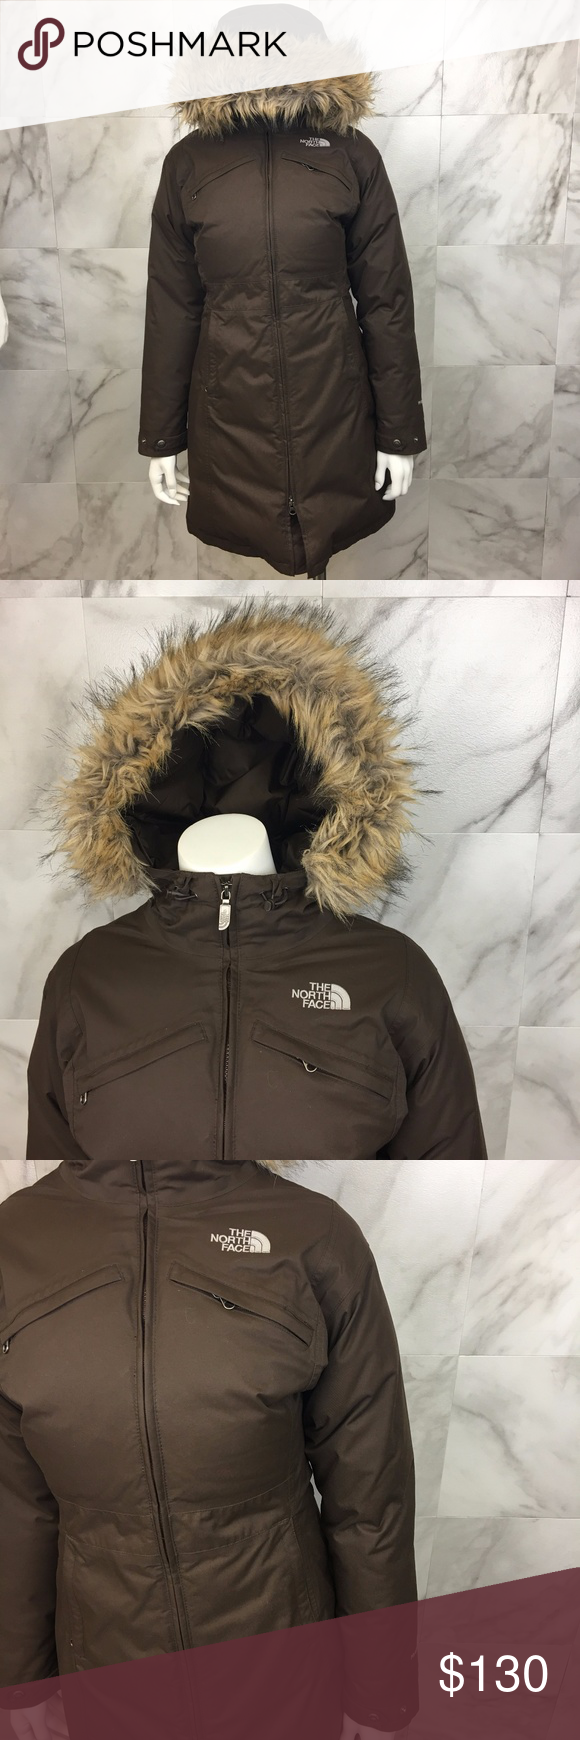 b2f30ef66017 The North Face Long Puffy Coat size S Acrylic faux fur hood liner parka  puffy winter